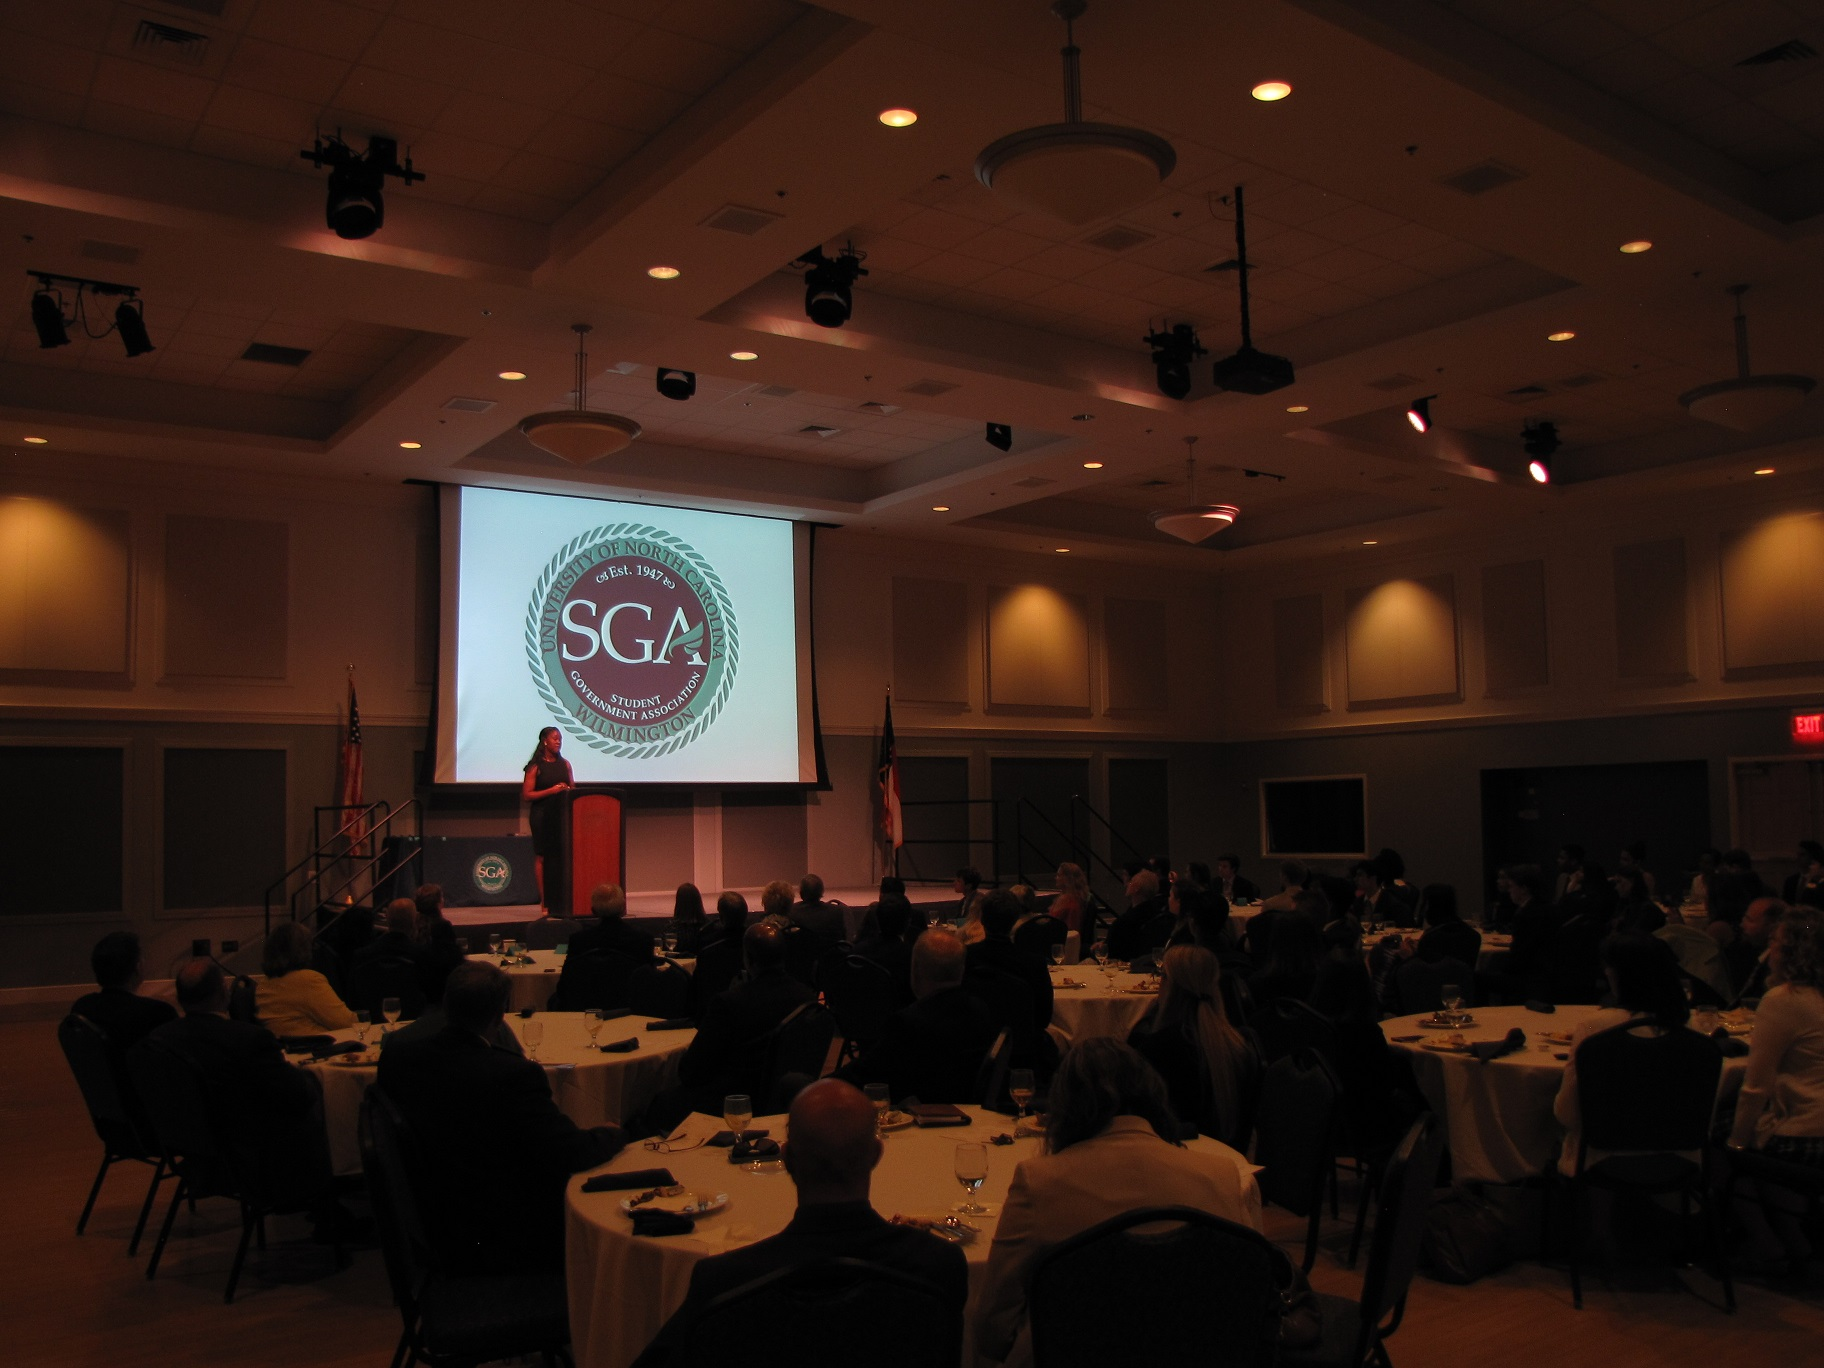 Newly elected SGA President Ottillie Mensah addressed those present at the annual SGA Inauguration.